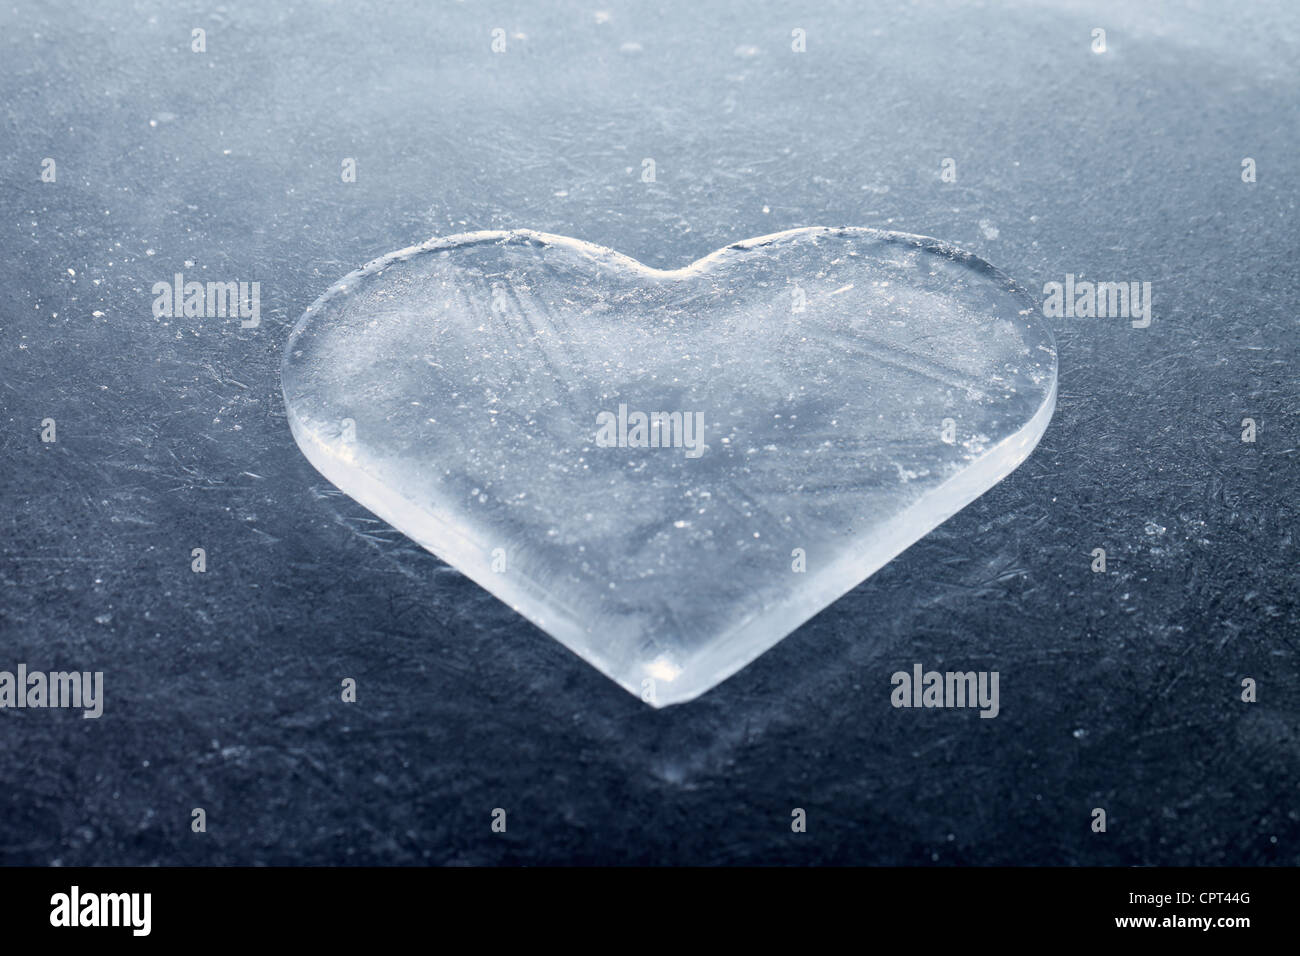 A Piece of ice shaped like a heart. - Stock Image